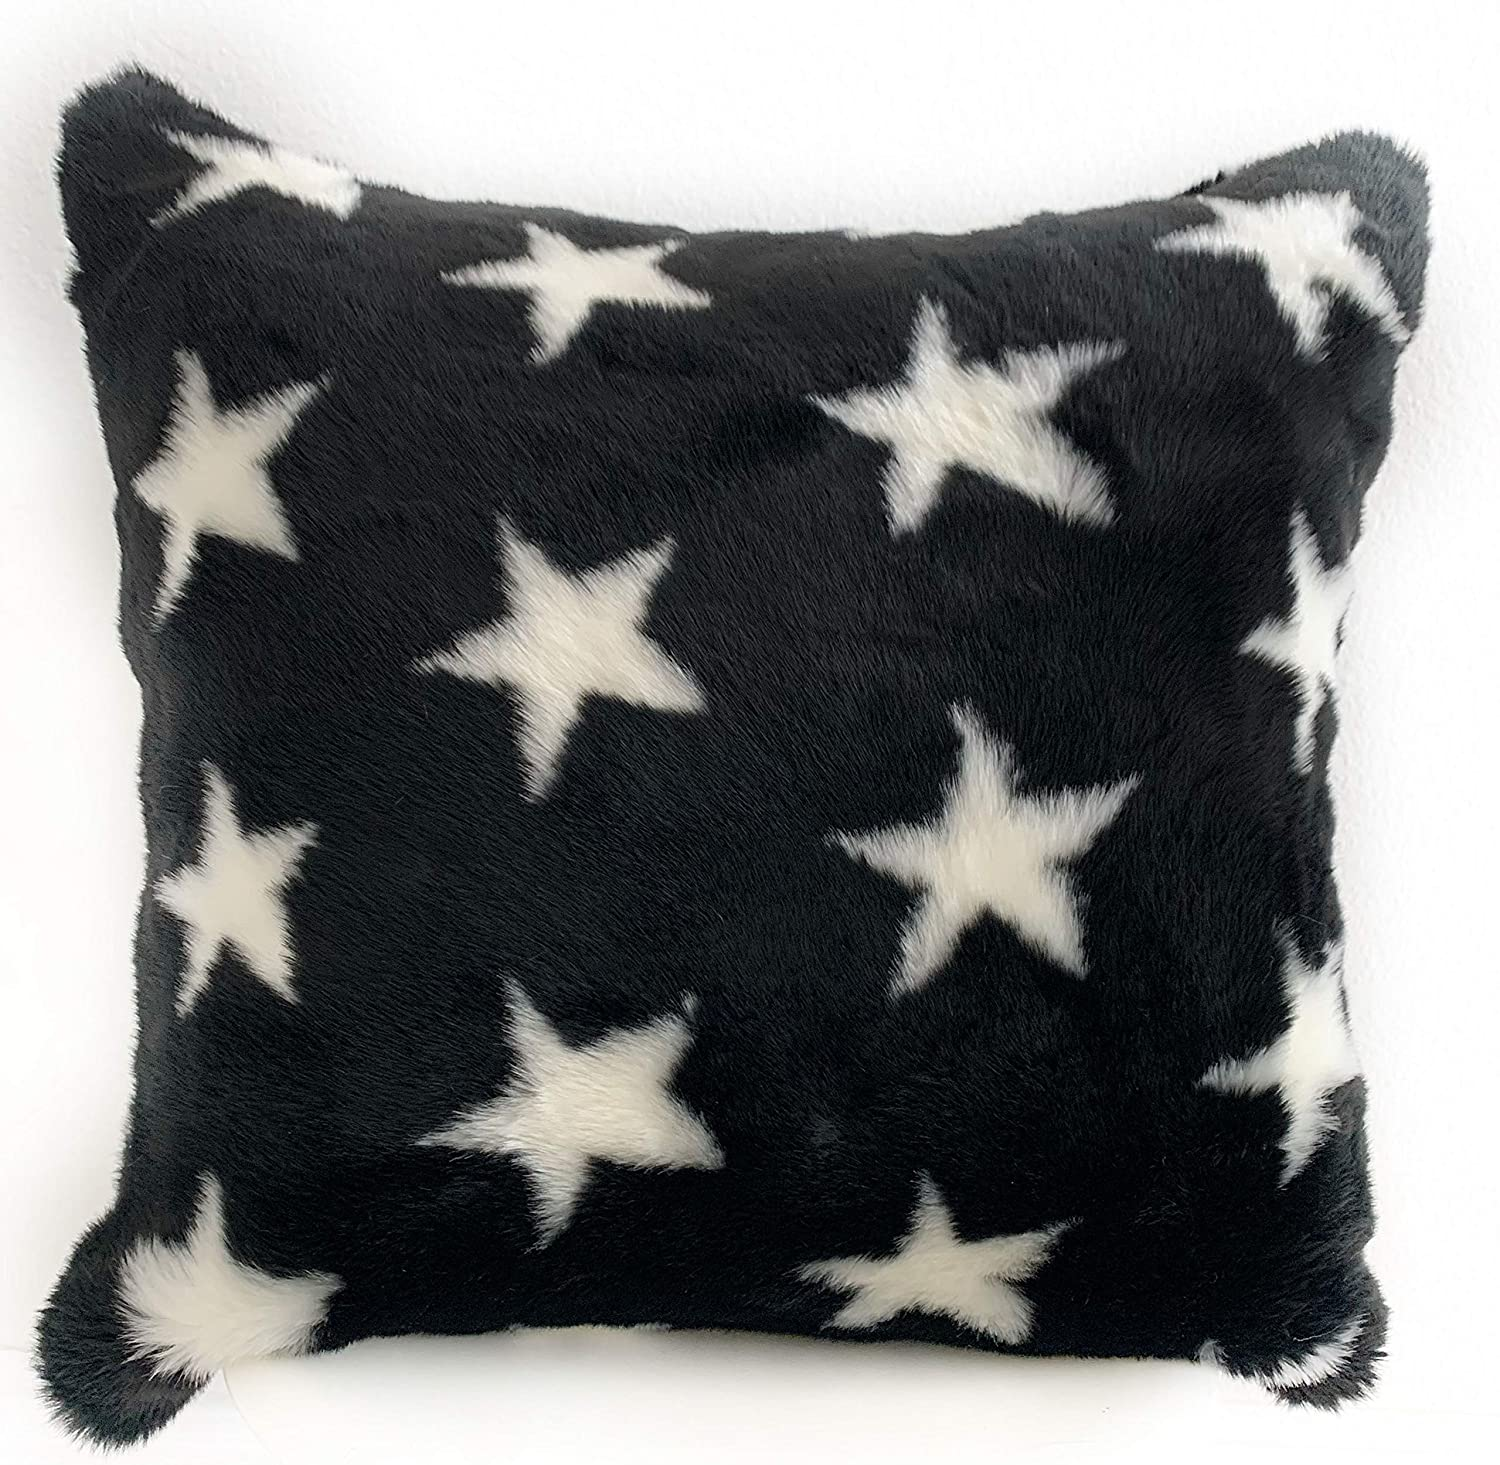 67% OFF of fixed price Plutus Brands Black New York Mall and White Soft Animal Fur Stars Faux